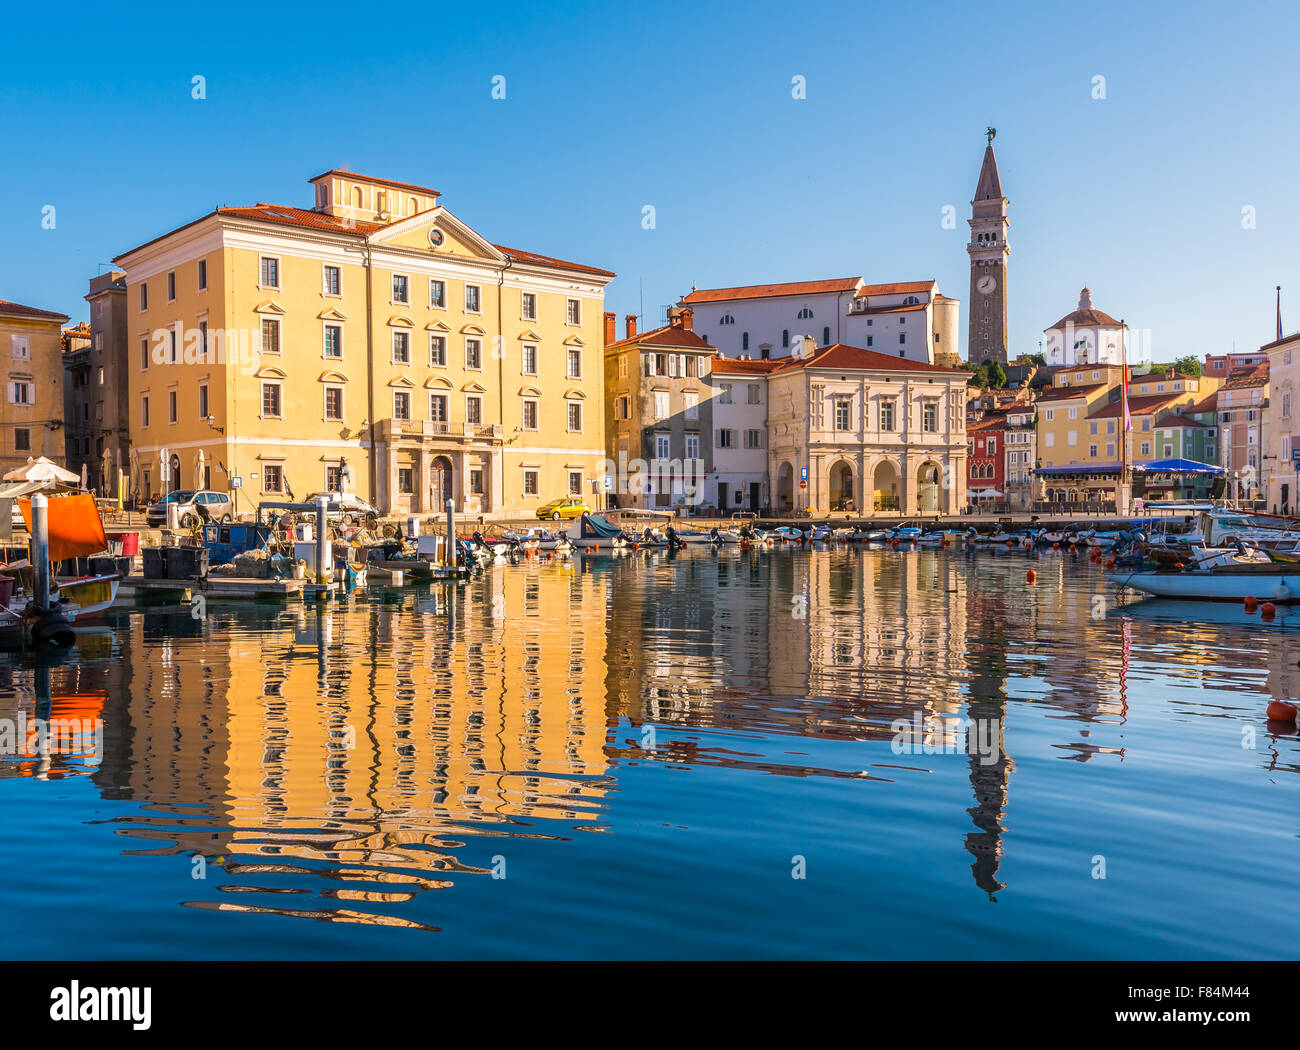 Venetian Port and The Main Square Tartini of Piran City Reflected on Water in Slovenia. Stock Photo